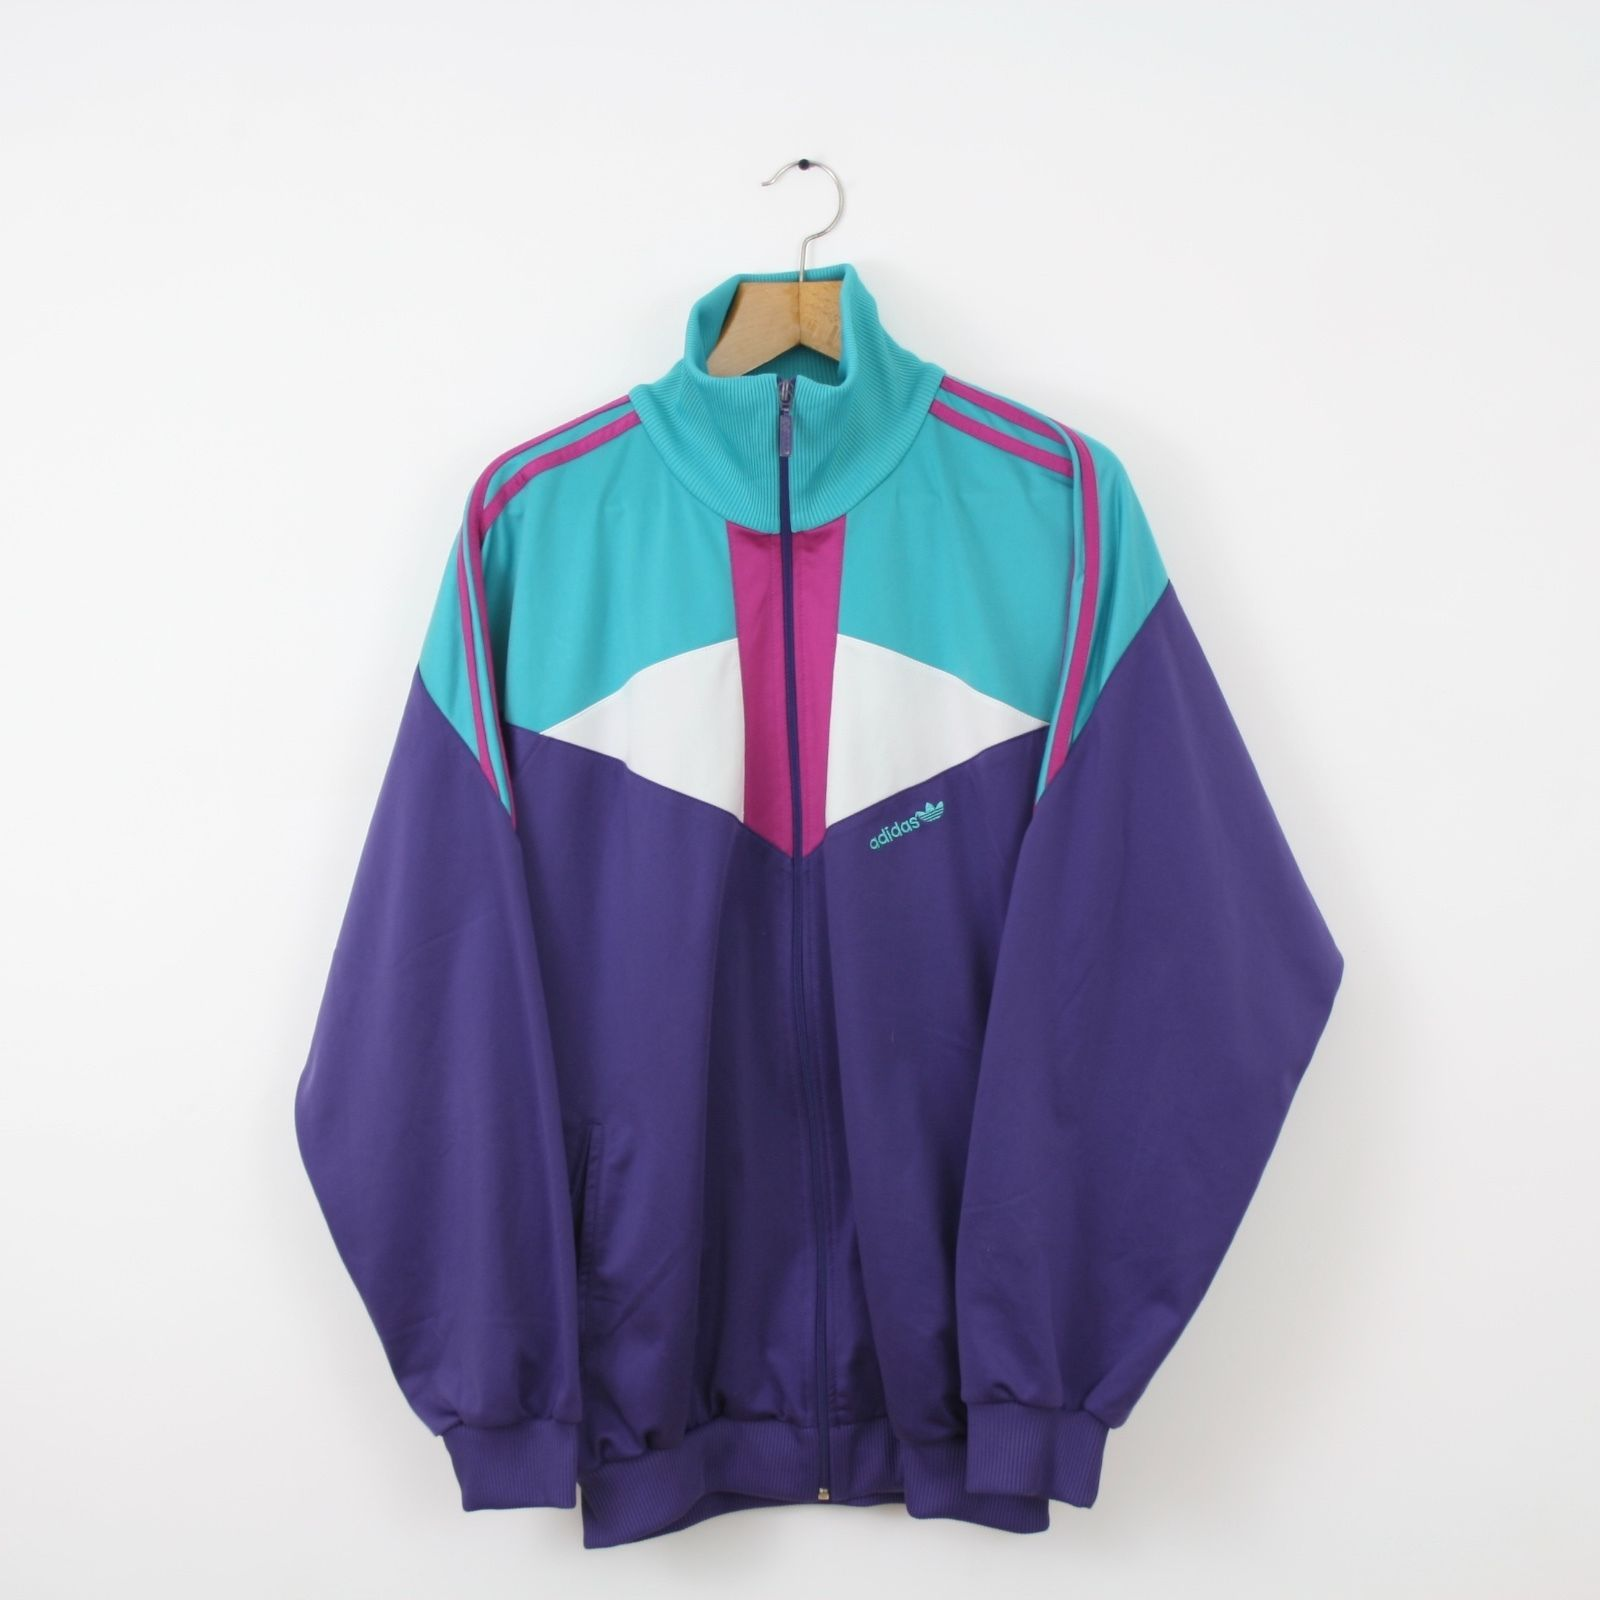 006929ce1ef3 Vintage ADIDAS 80s 90s Purple Green Tracksuit Top Jacket